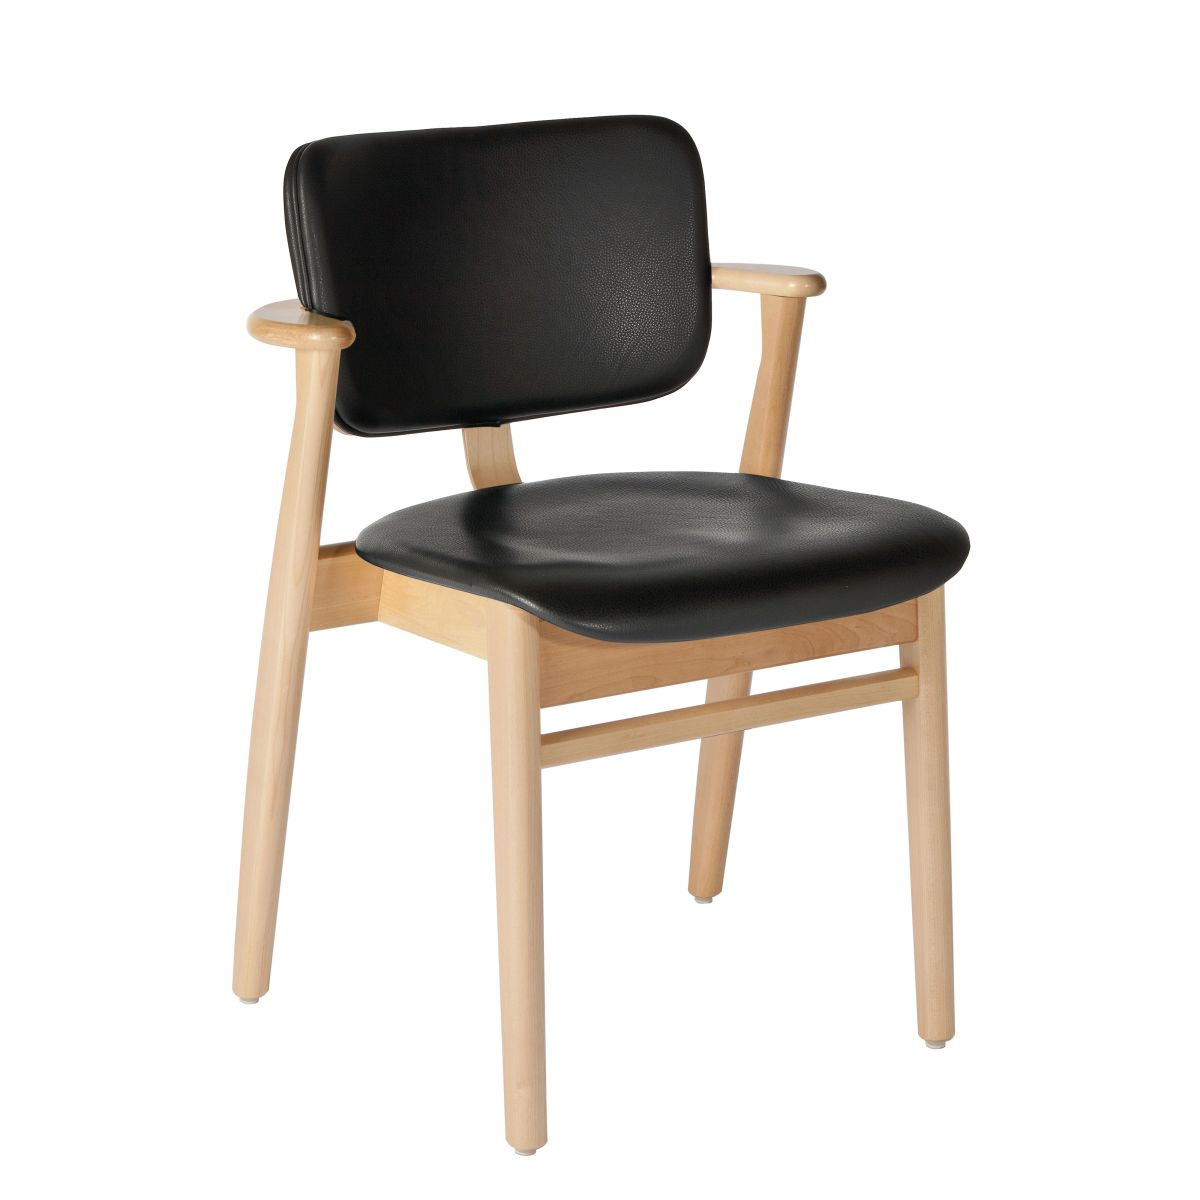 Domus Chair legs clear laquered birch_seat back leather black